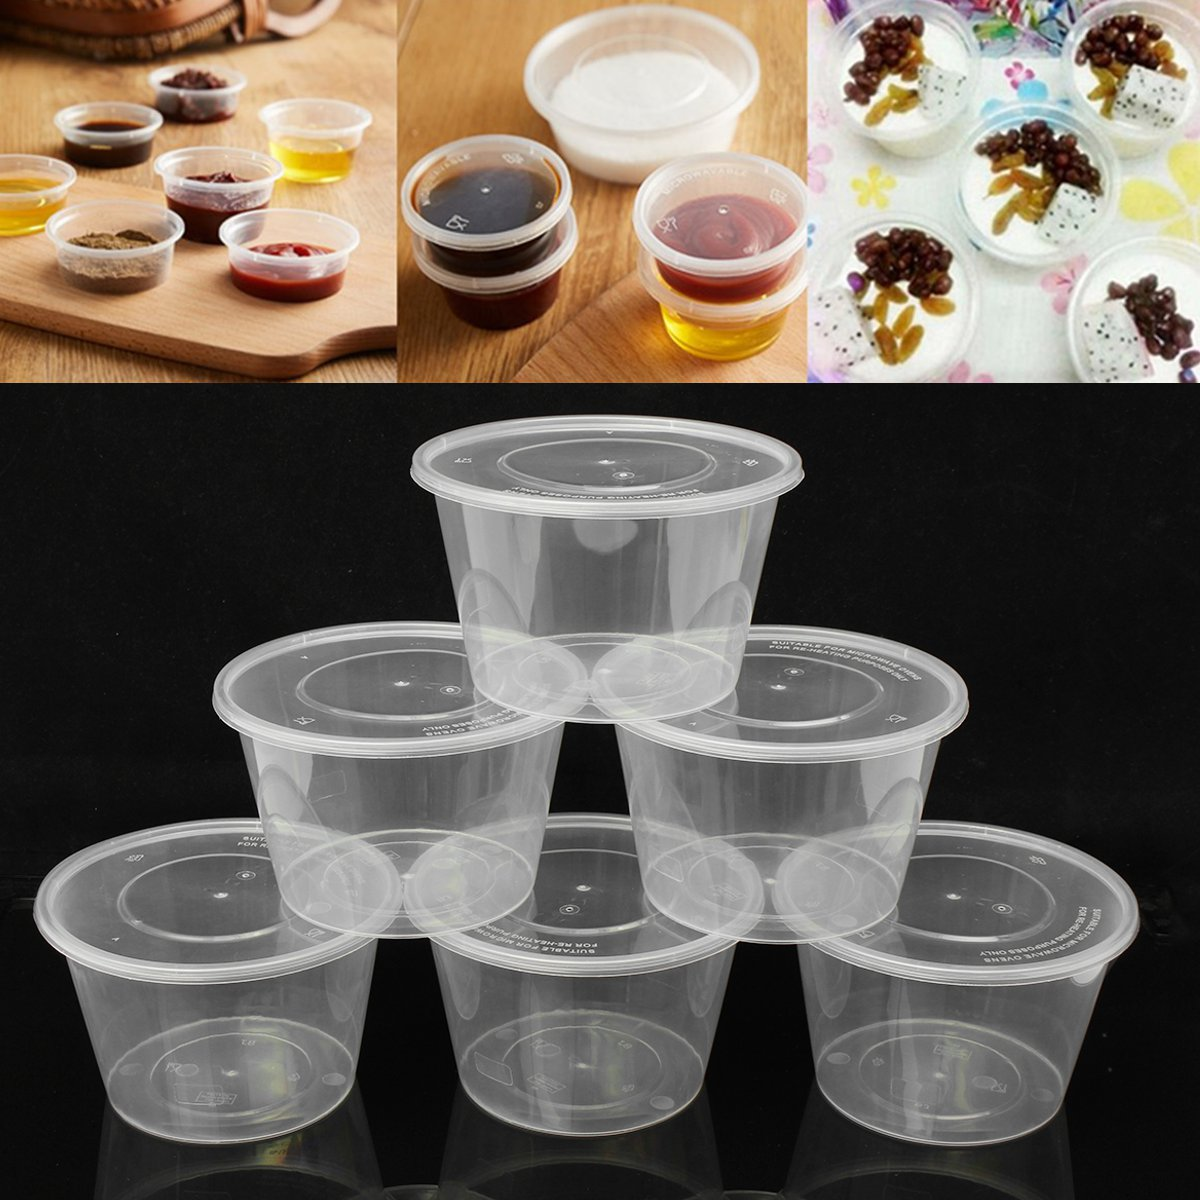 10 Pcs Lot Clear Disposable Portion Cups Condiment Cup With Cover Sauce Yogurt Jelly Pudding Storage Containers Salad Cup Bowl